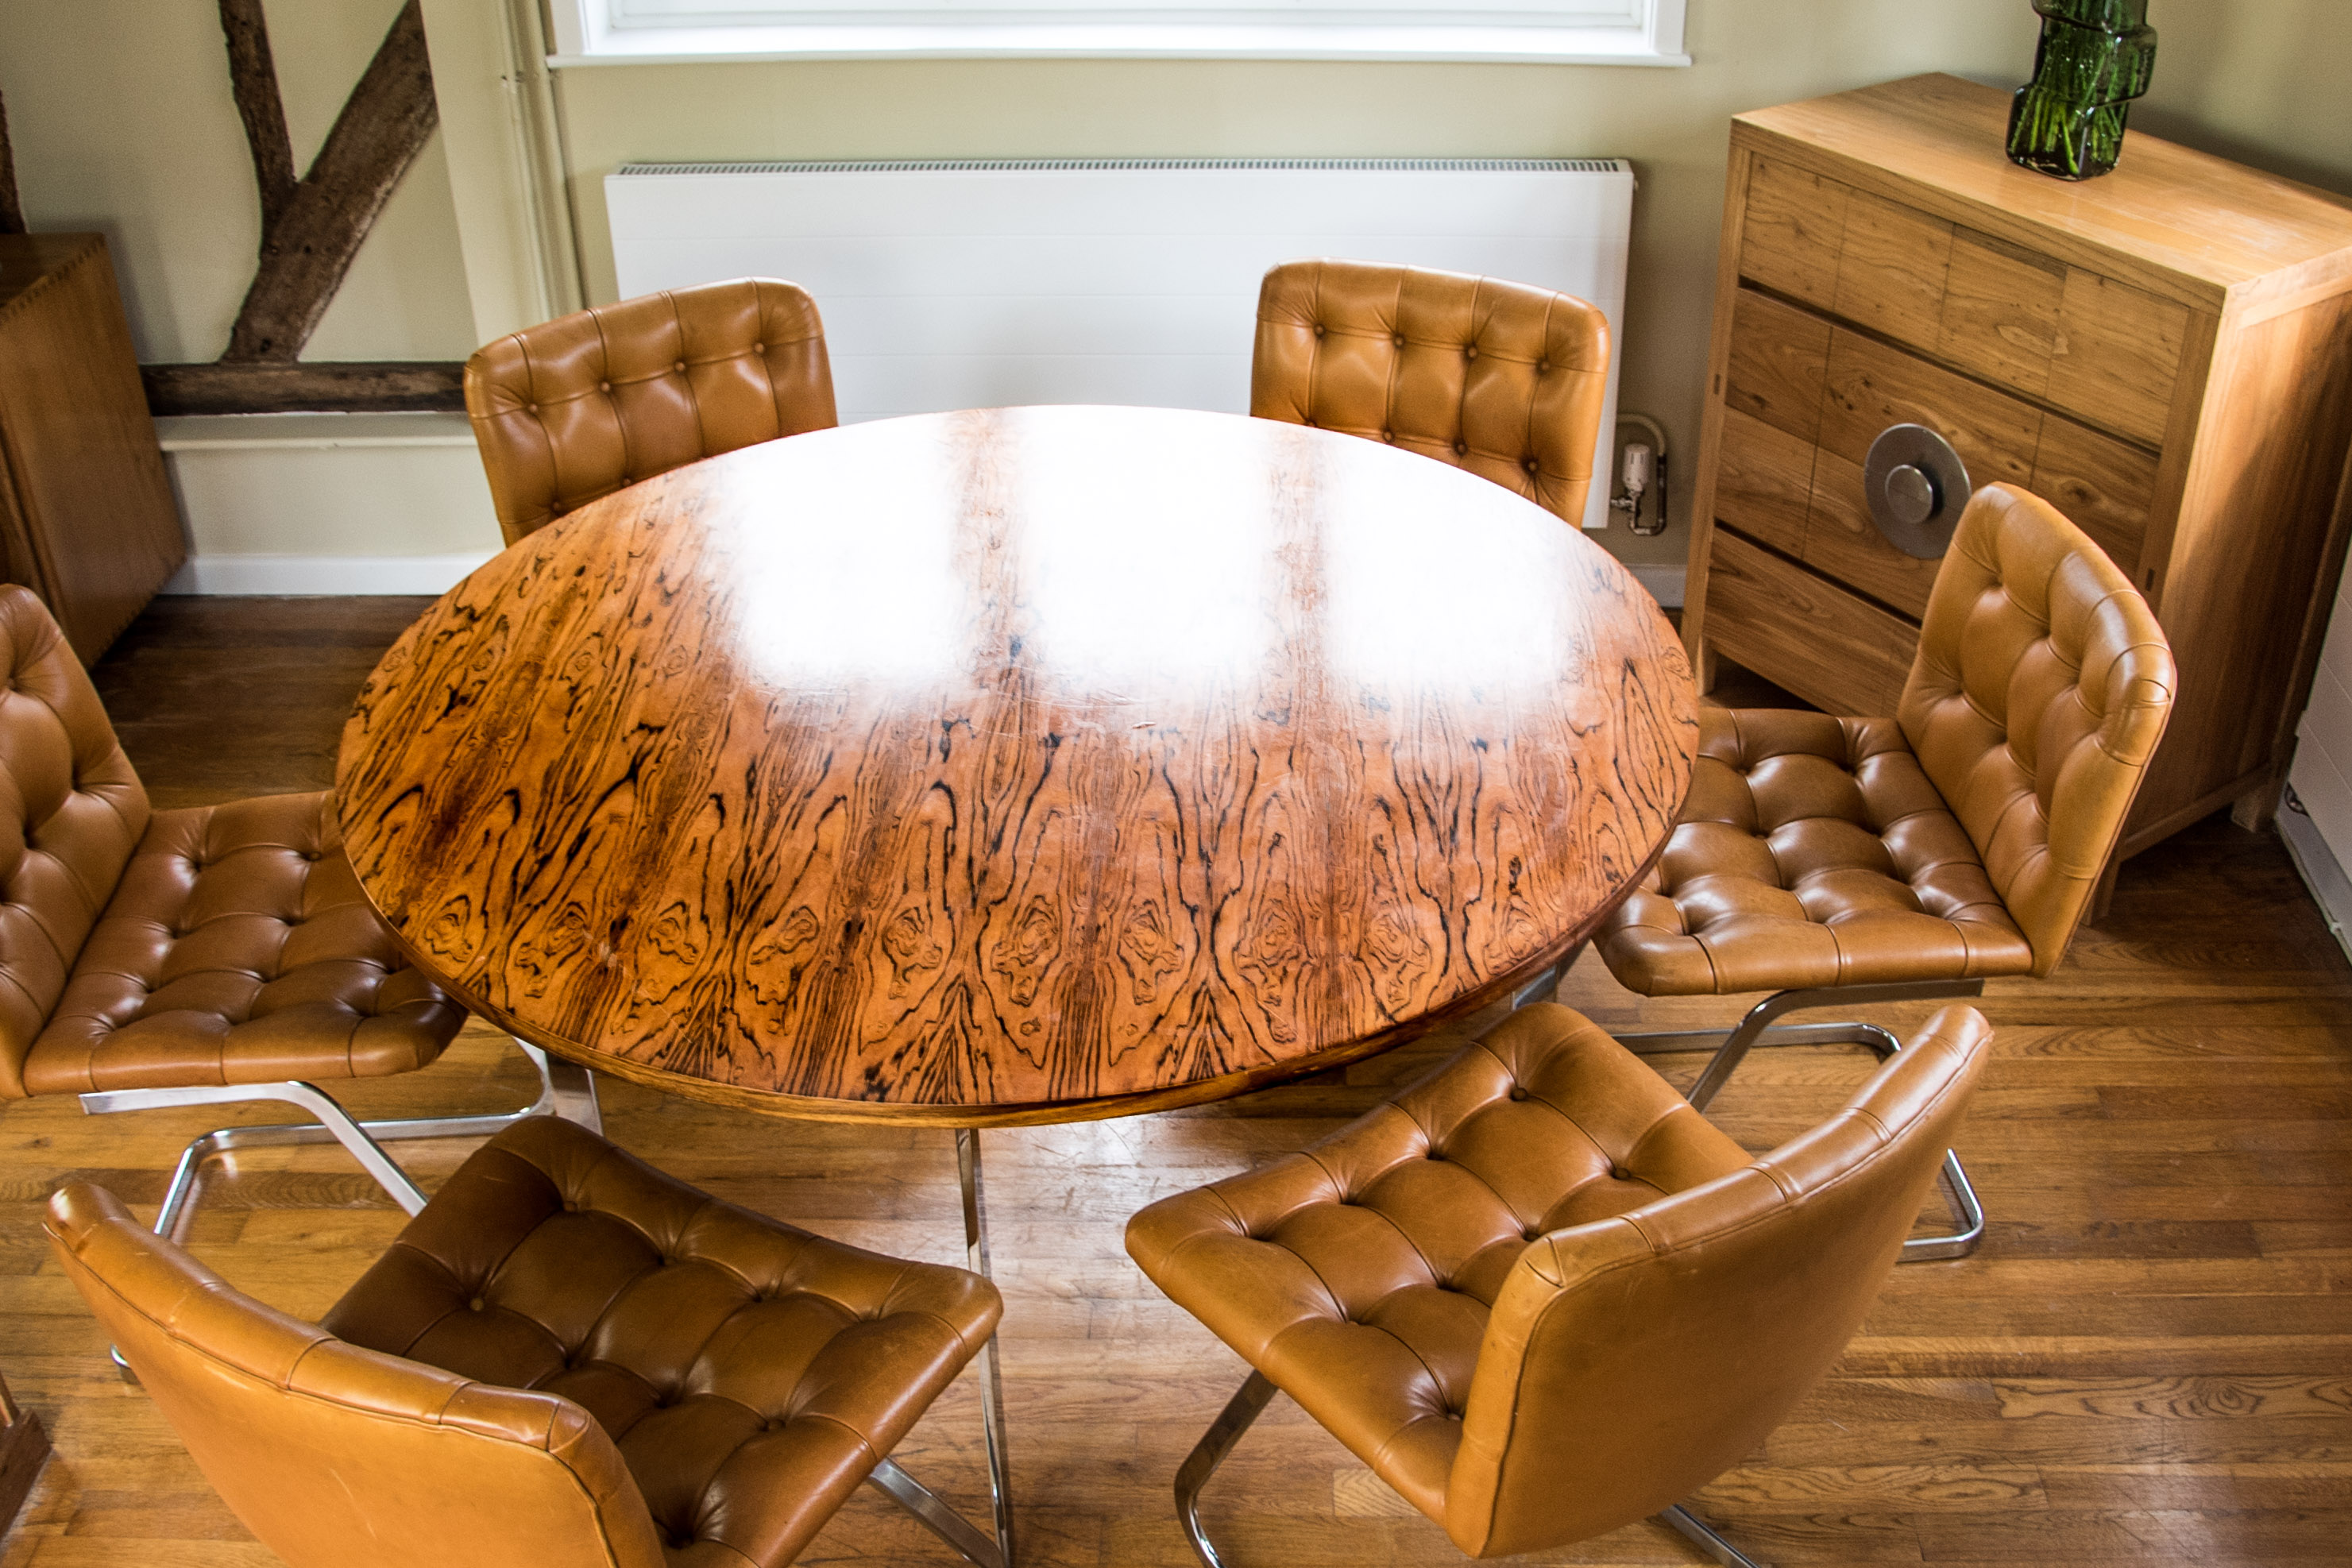 Italian Tan Leather Dining Chairs at table 3